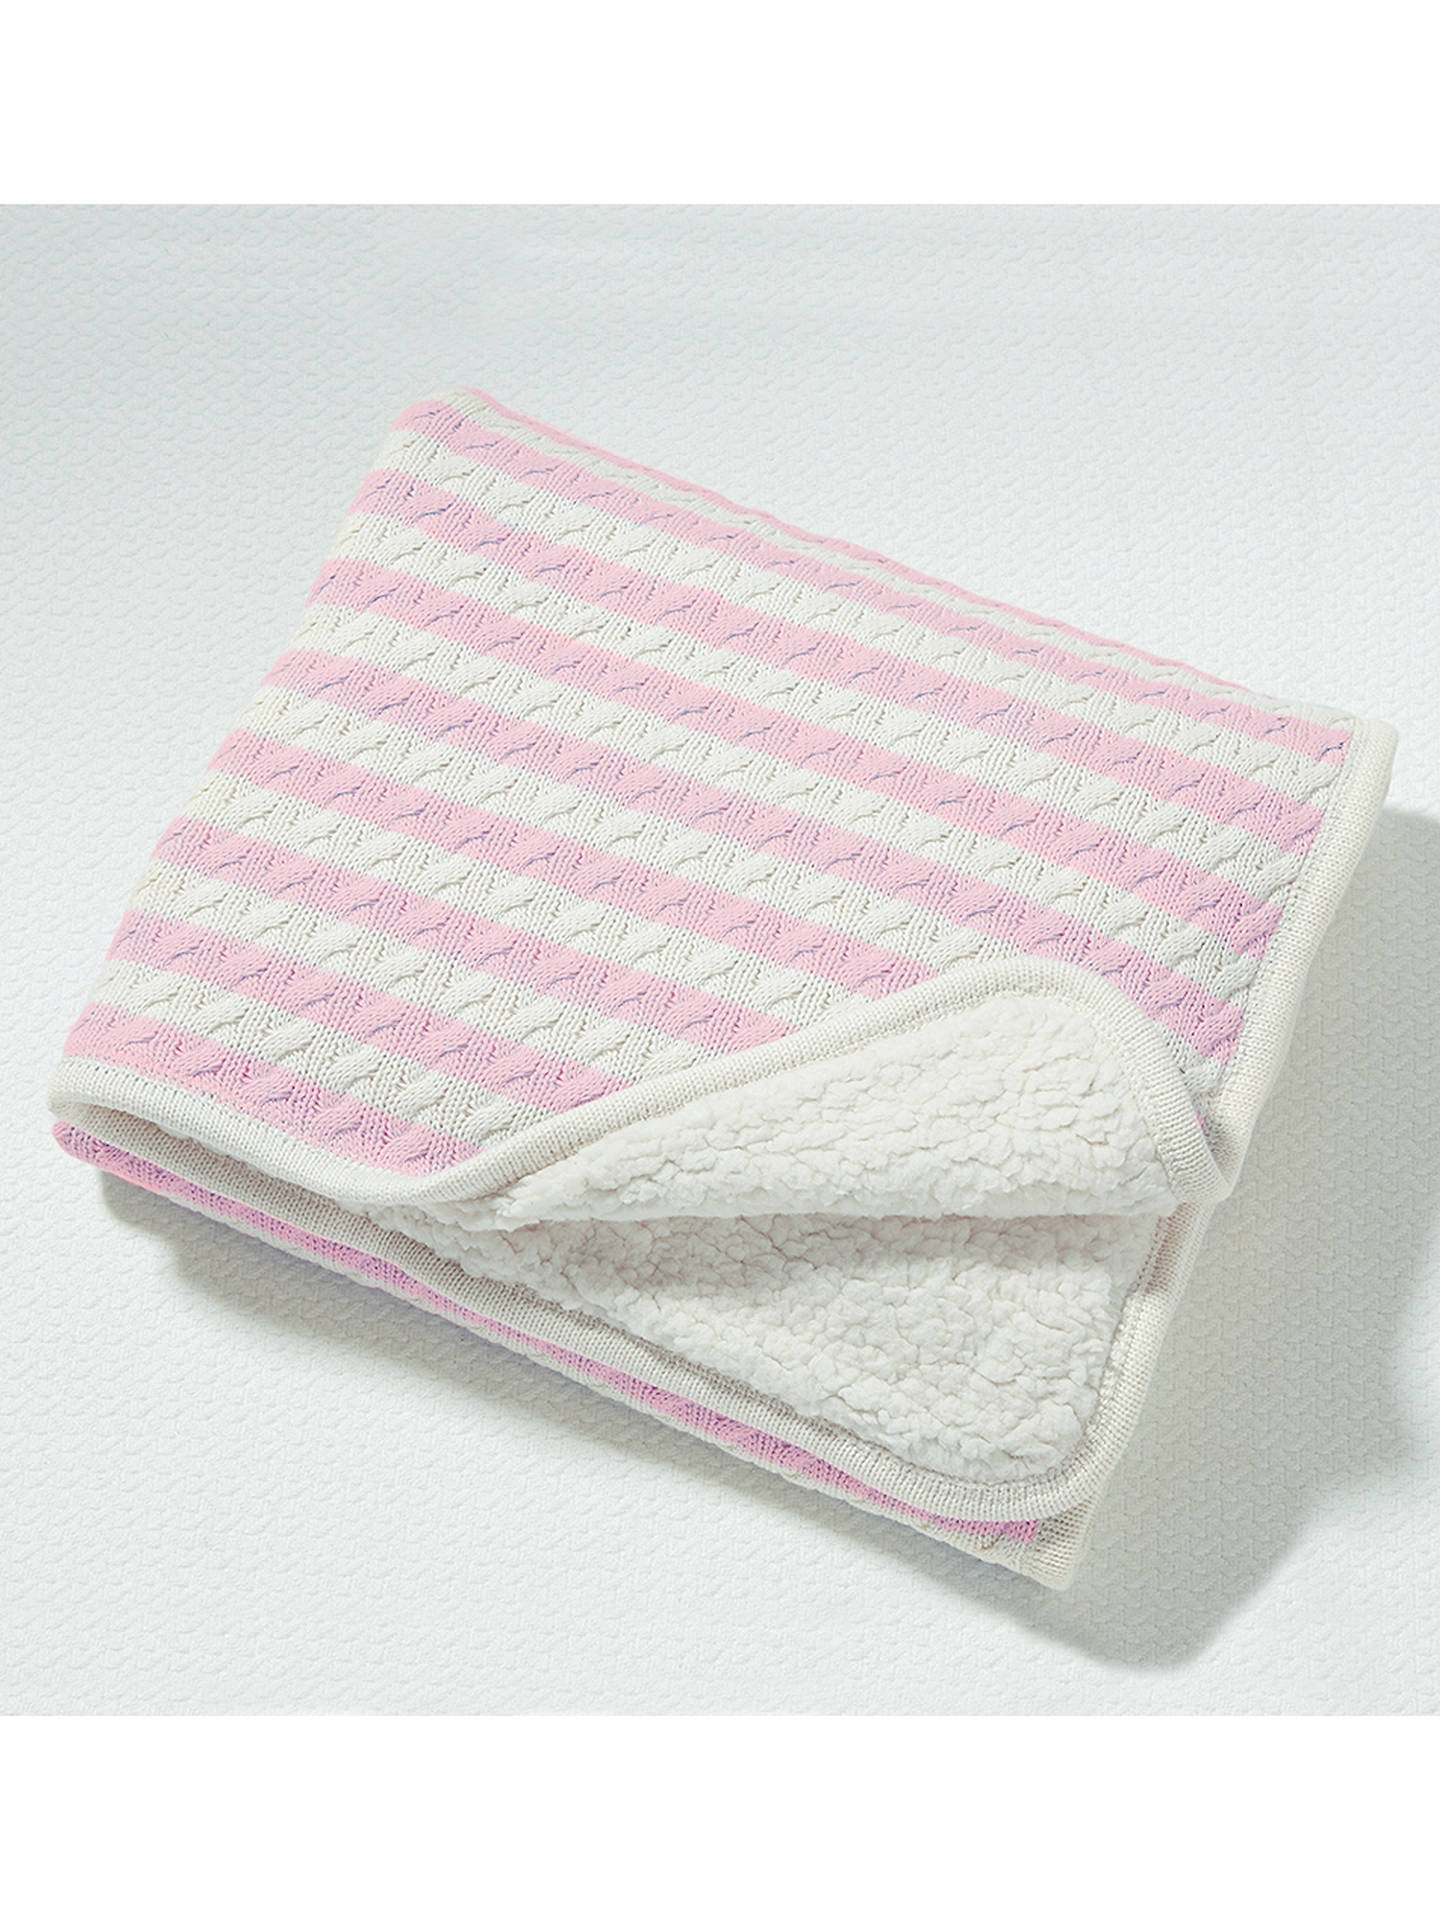 BuyPottery Barn Kids Emerson Baby Blanket, Pink Online at johnlewis.com